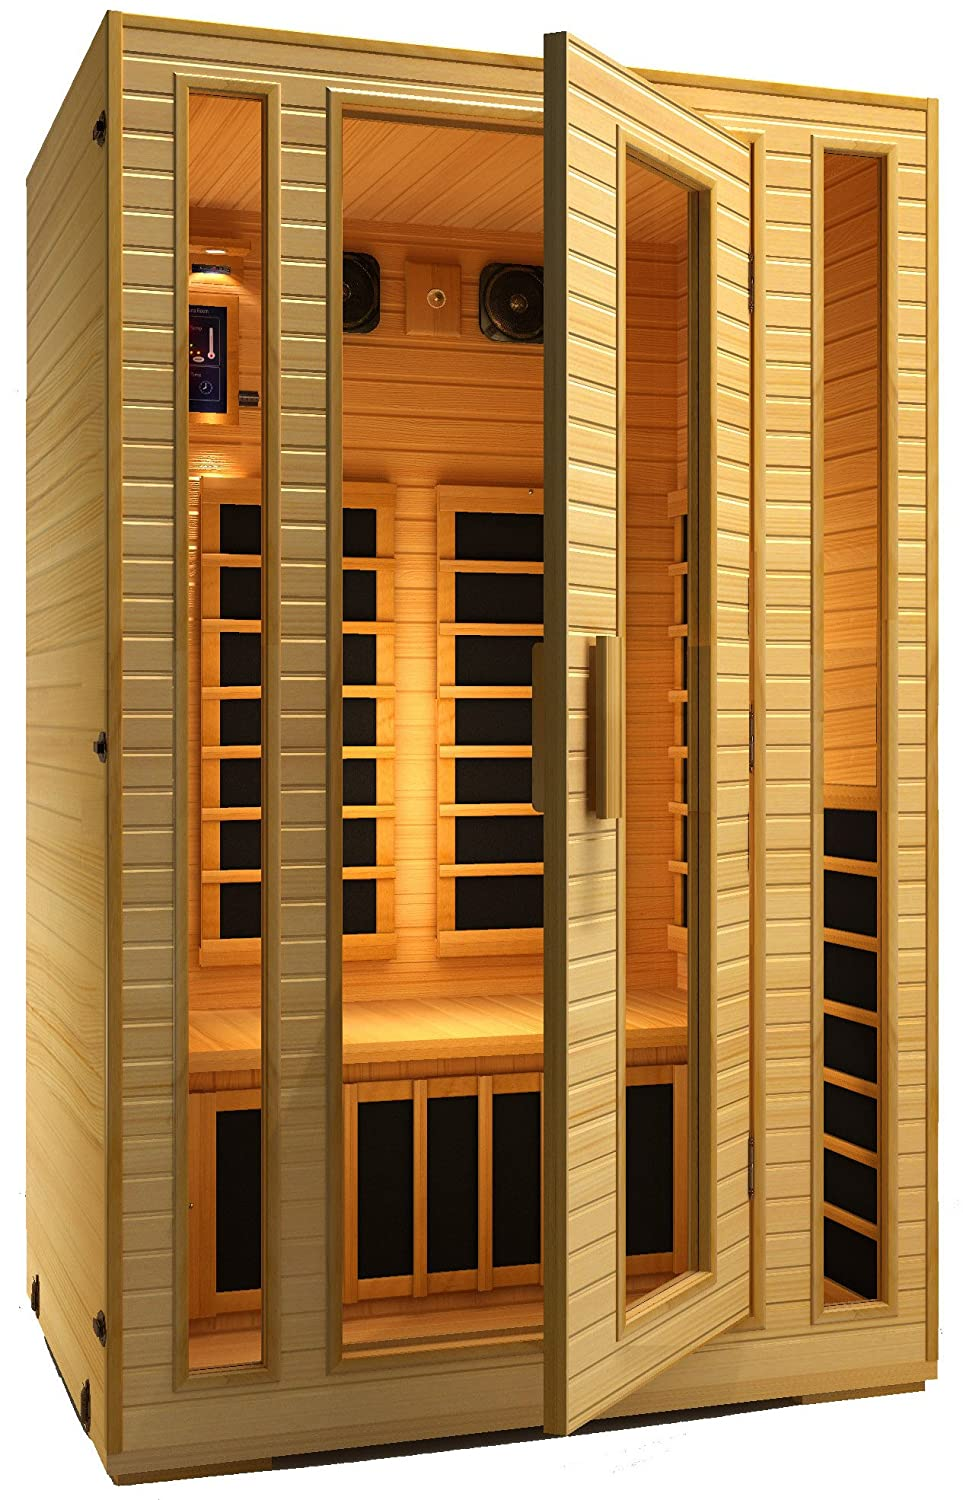 Infrared Sauna Weight Loss with the most reviews